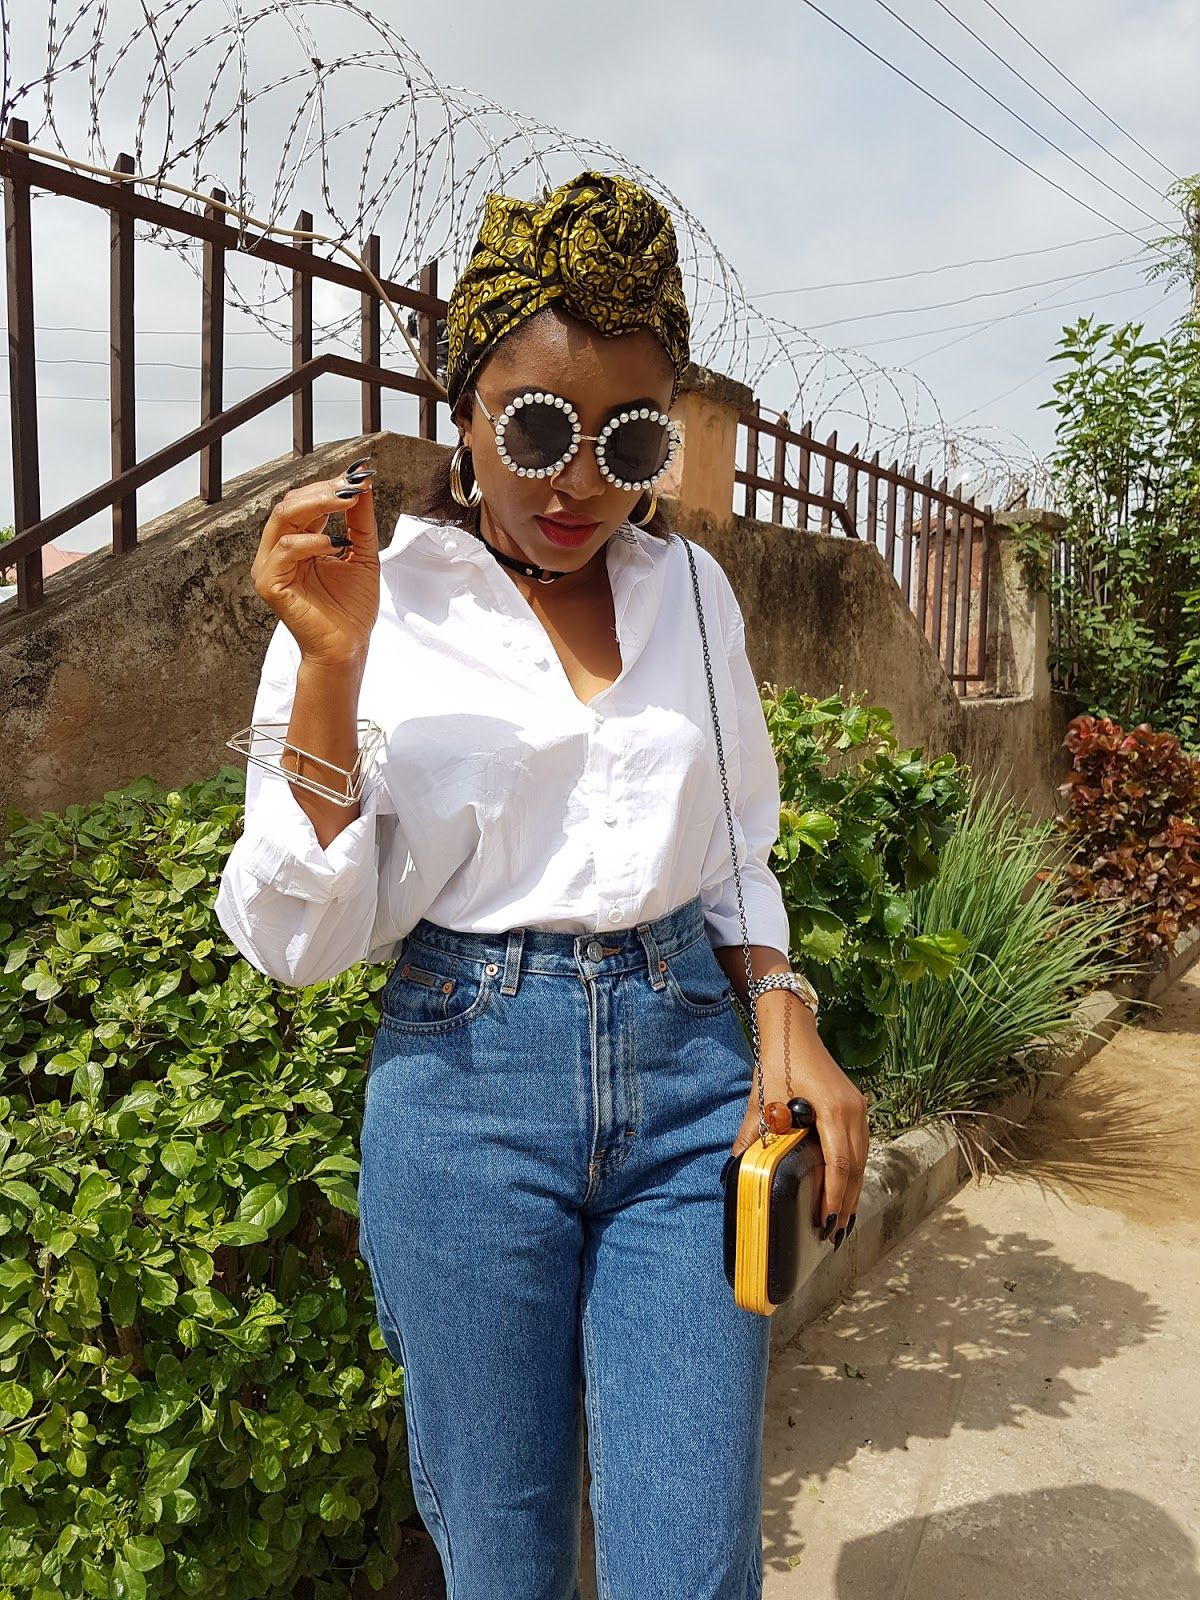 Image result for oversized shirt and jeans